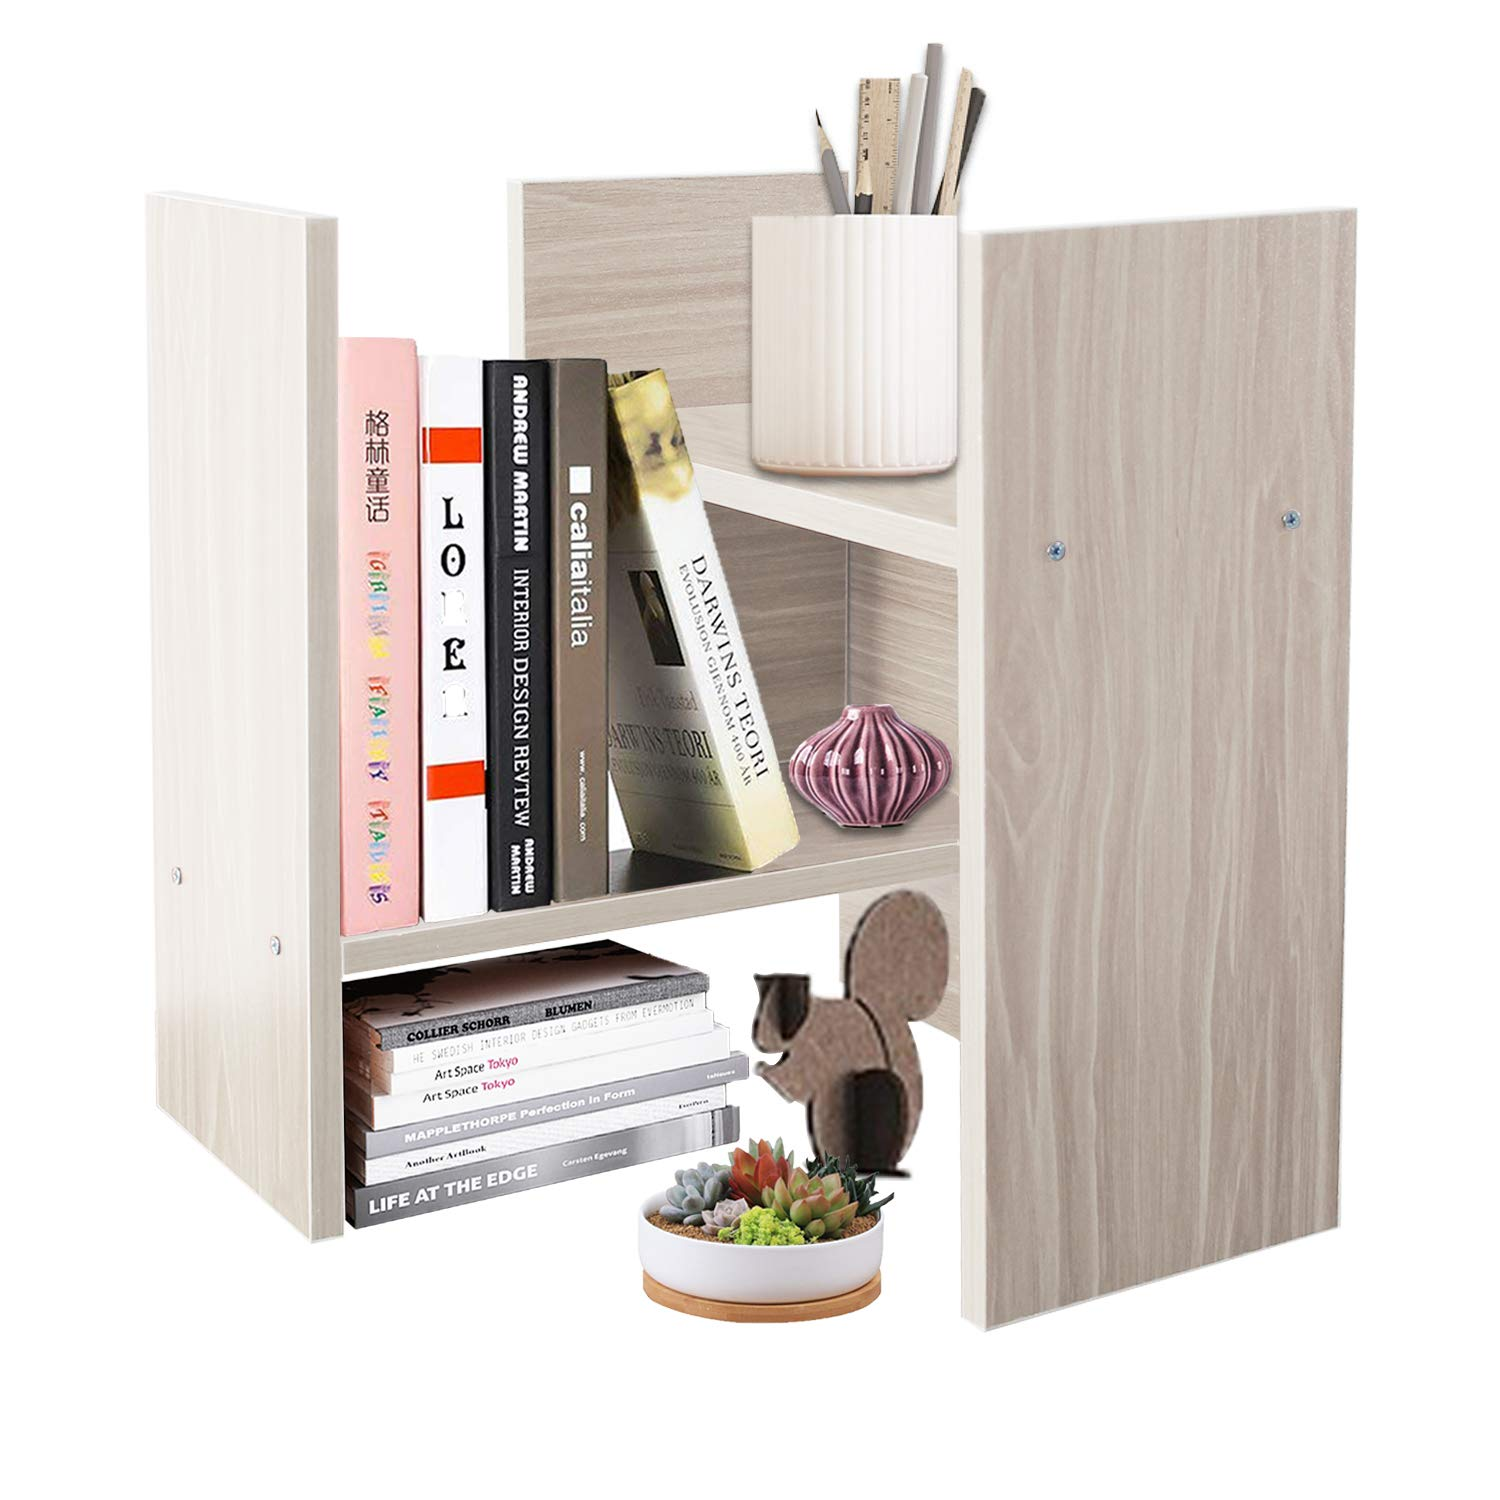 DL furniture – Expandable Wood Desktop Storage Organizer Multipurpose Desk Bookshelf Display Shelf Rack Counter Top Bookcase for Office Home White